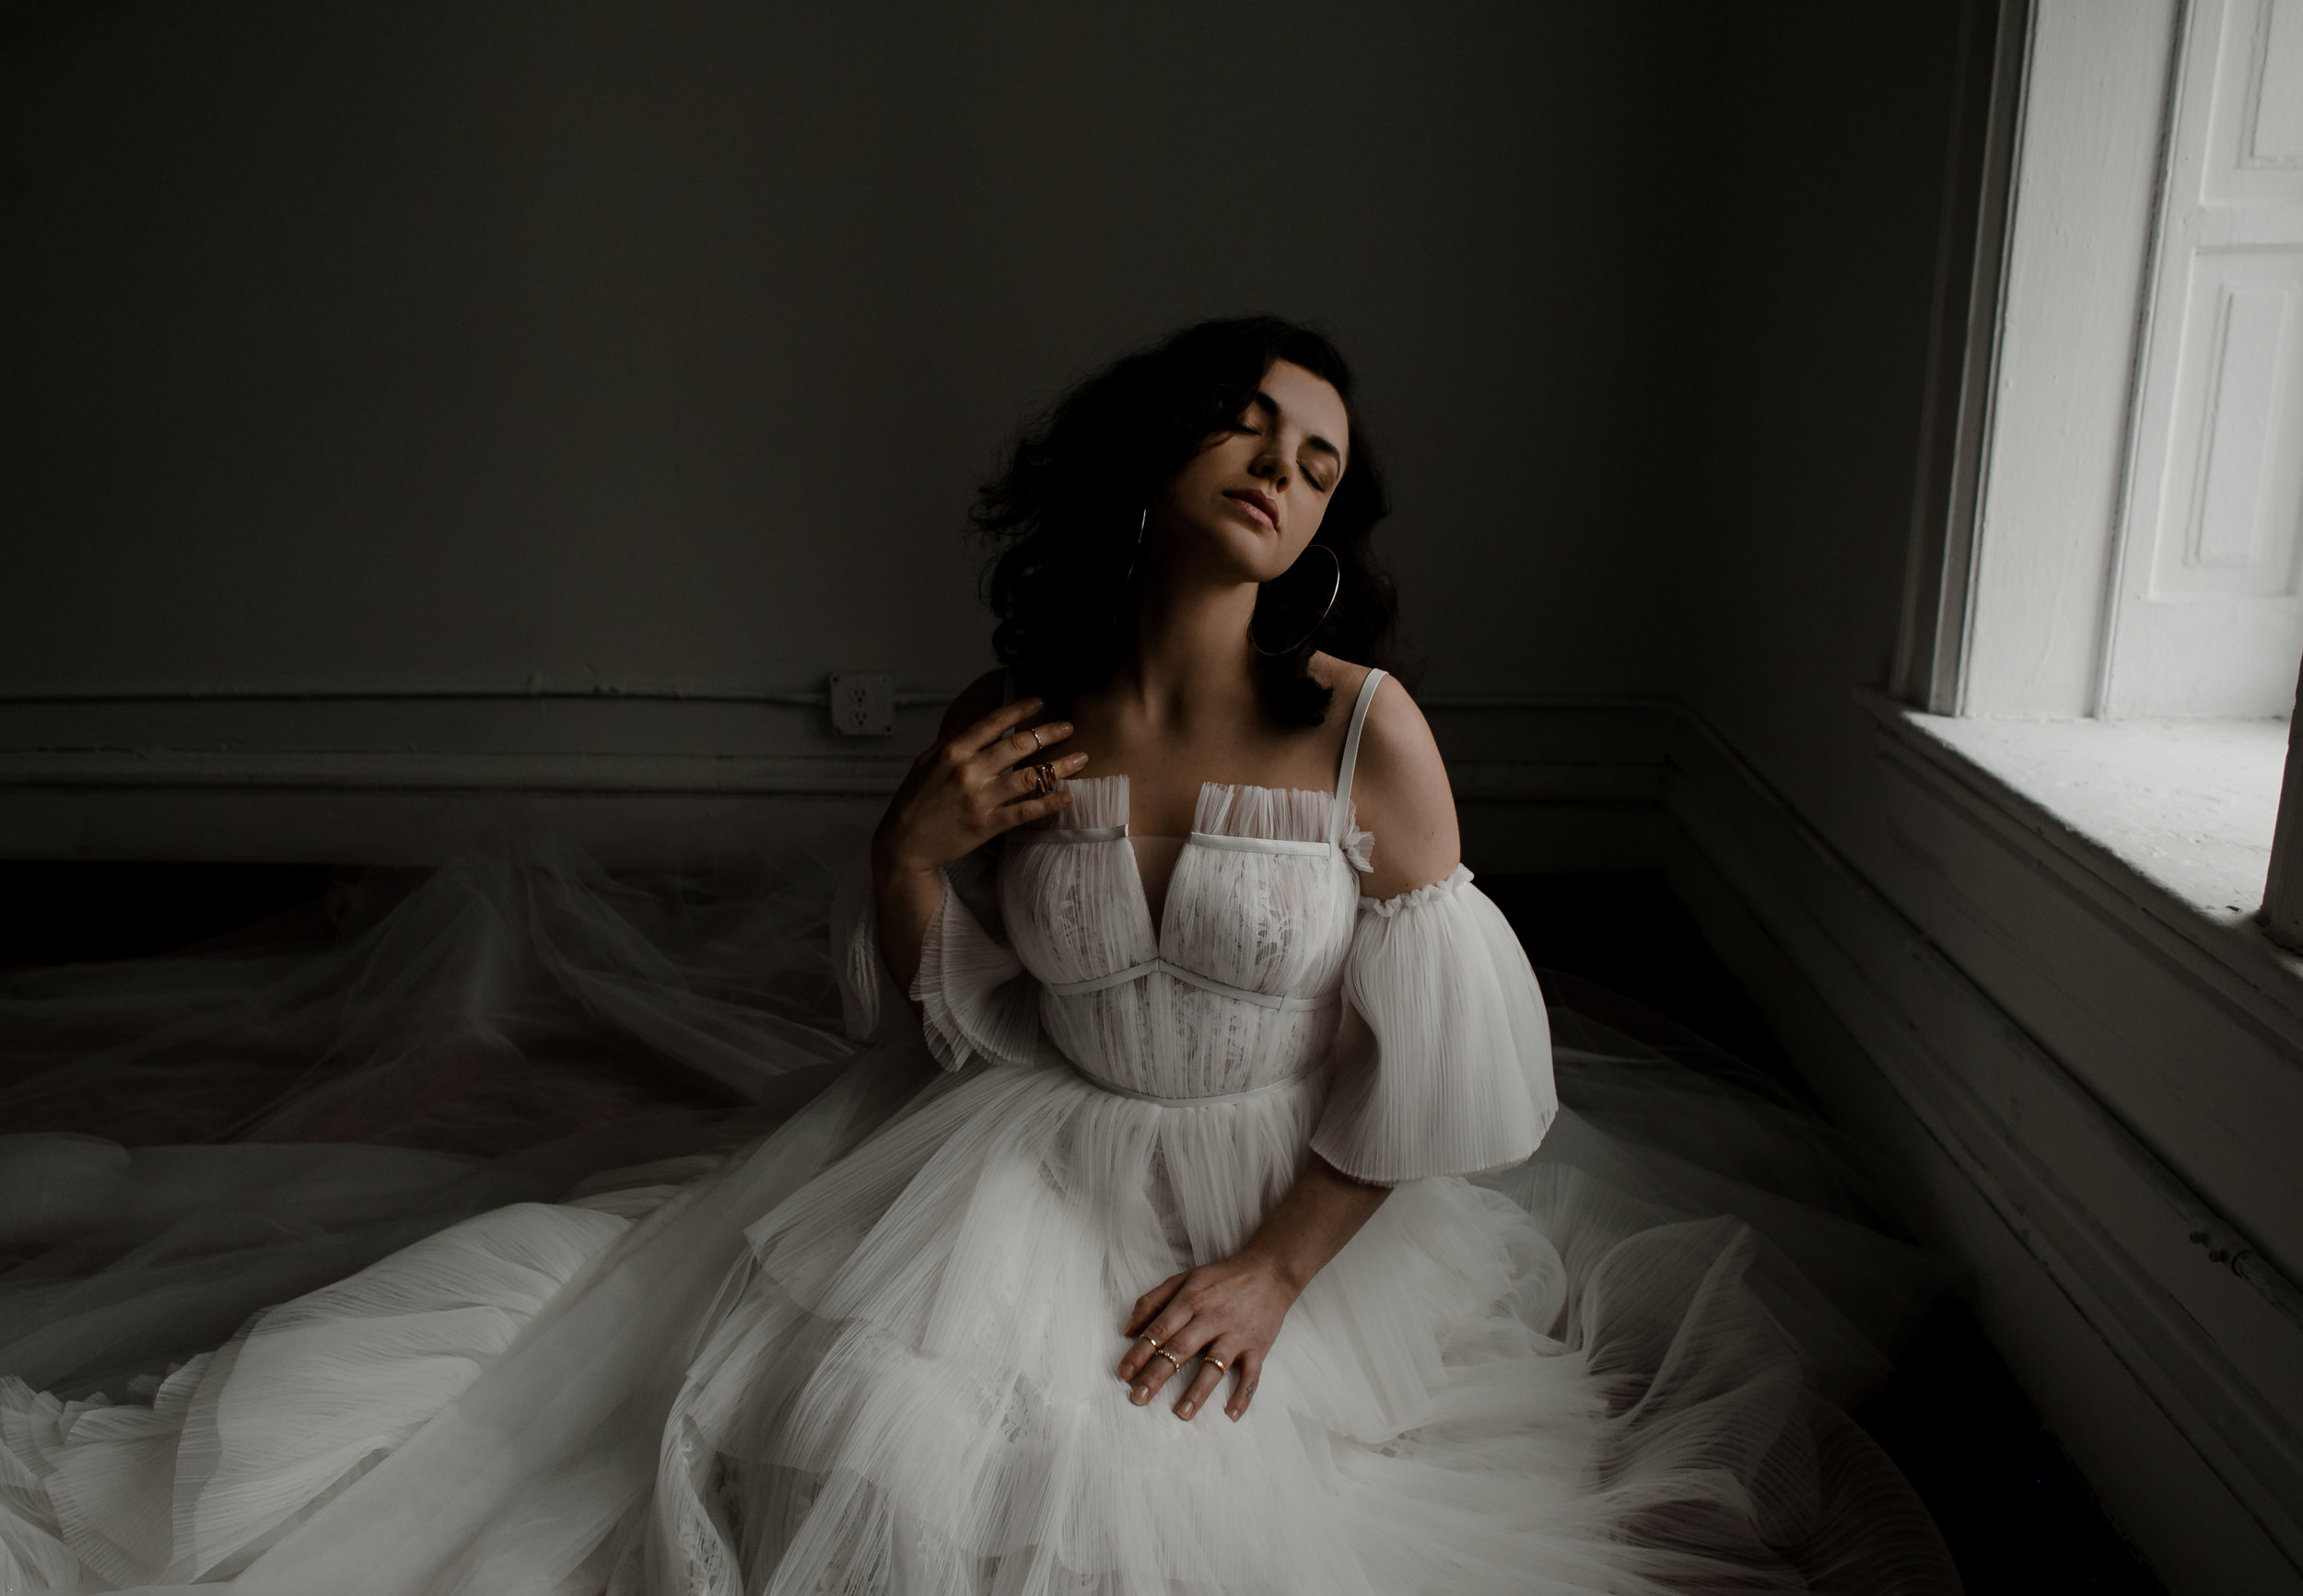 Chicago-Bride-Wedding-Dress-Varca-Edited-650.jpg